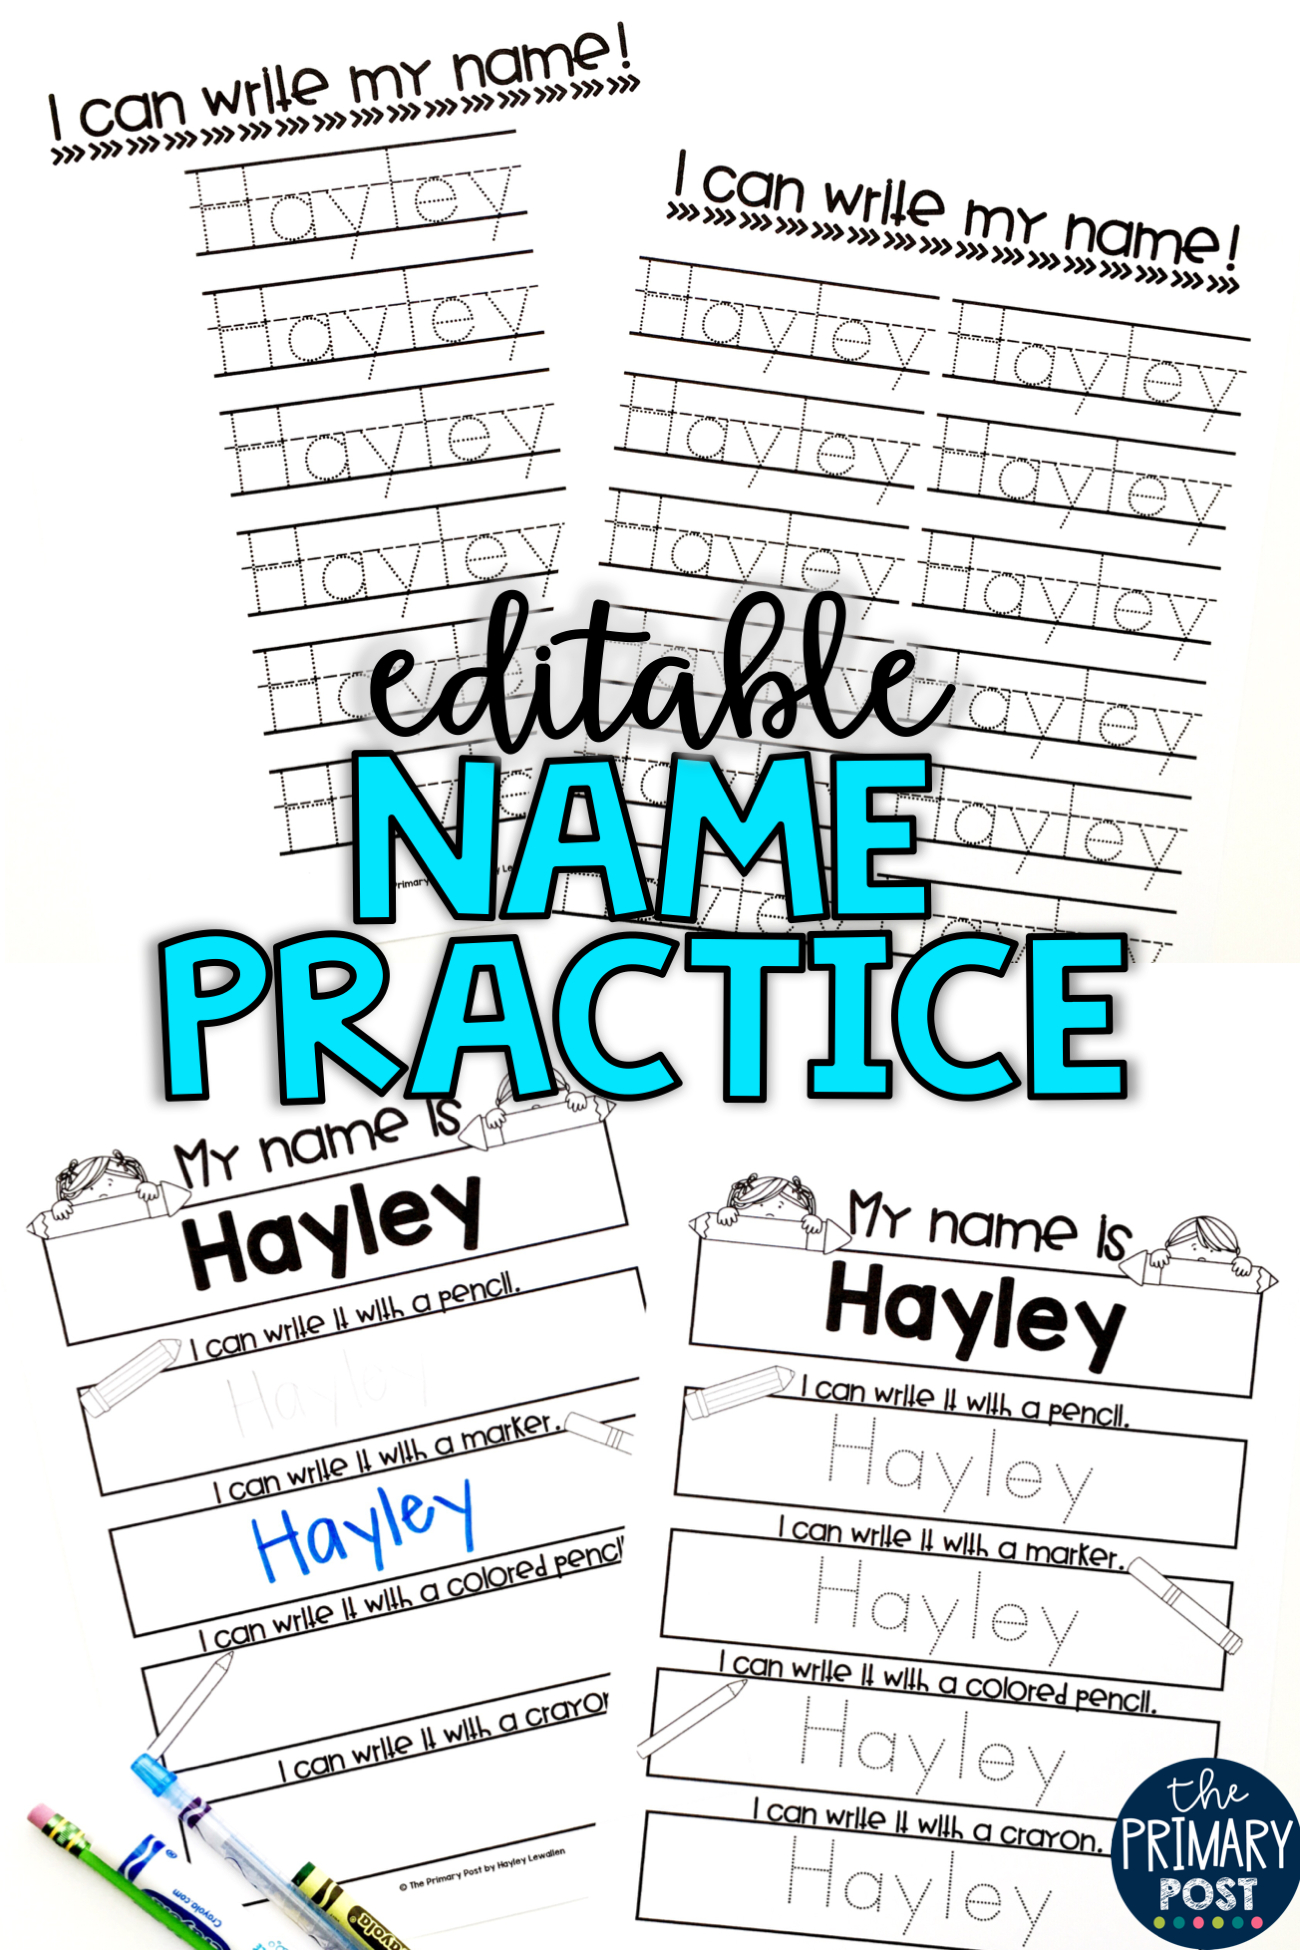 Editable Name Practice Sheets | Name Practice, Practice intended for Editable Name Tracing Pages